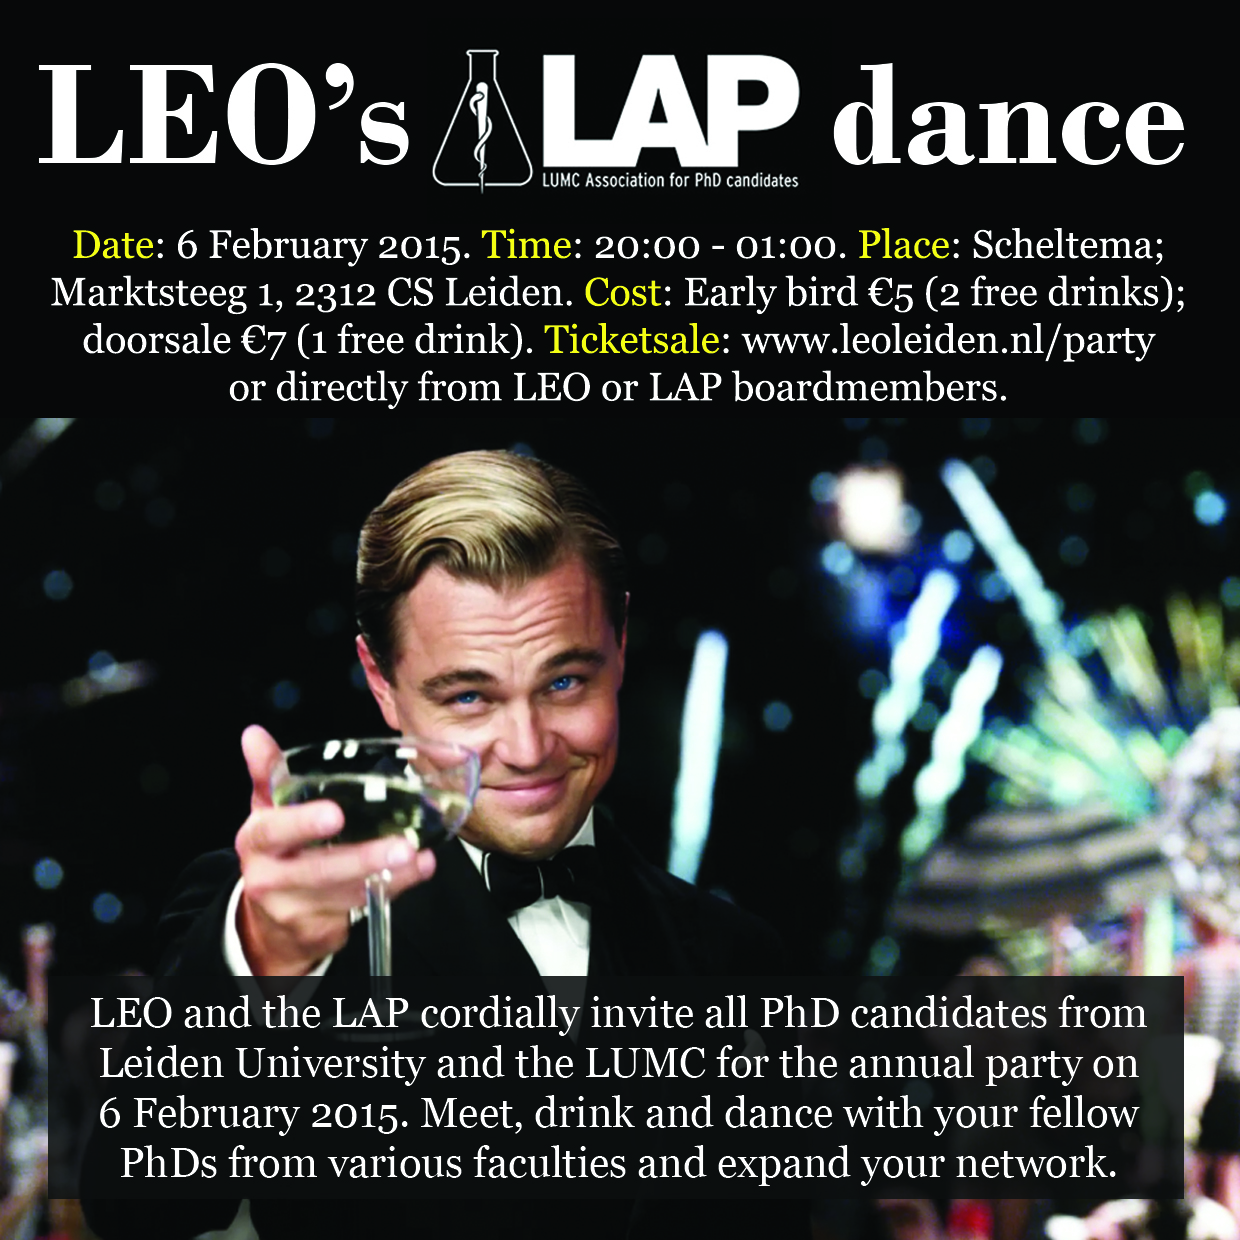 Flyer of LEOsLAPdance 2015